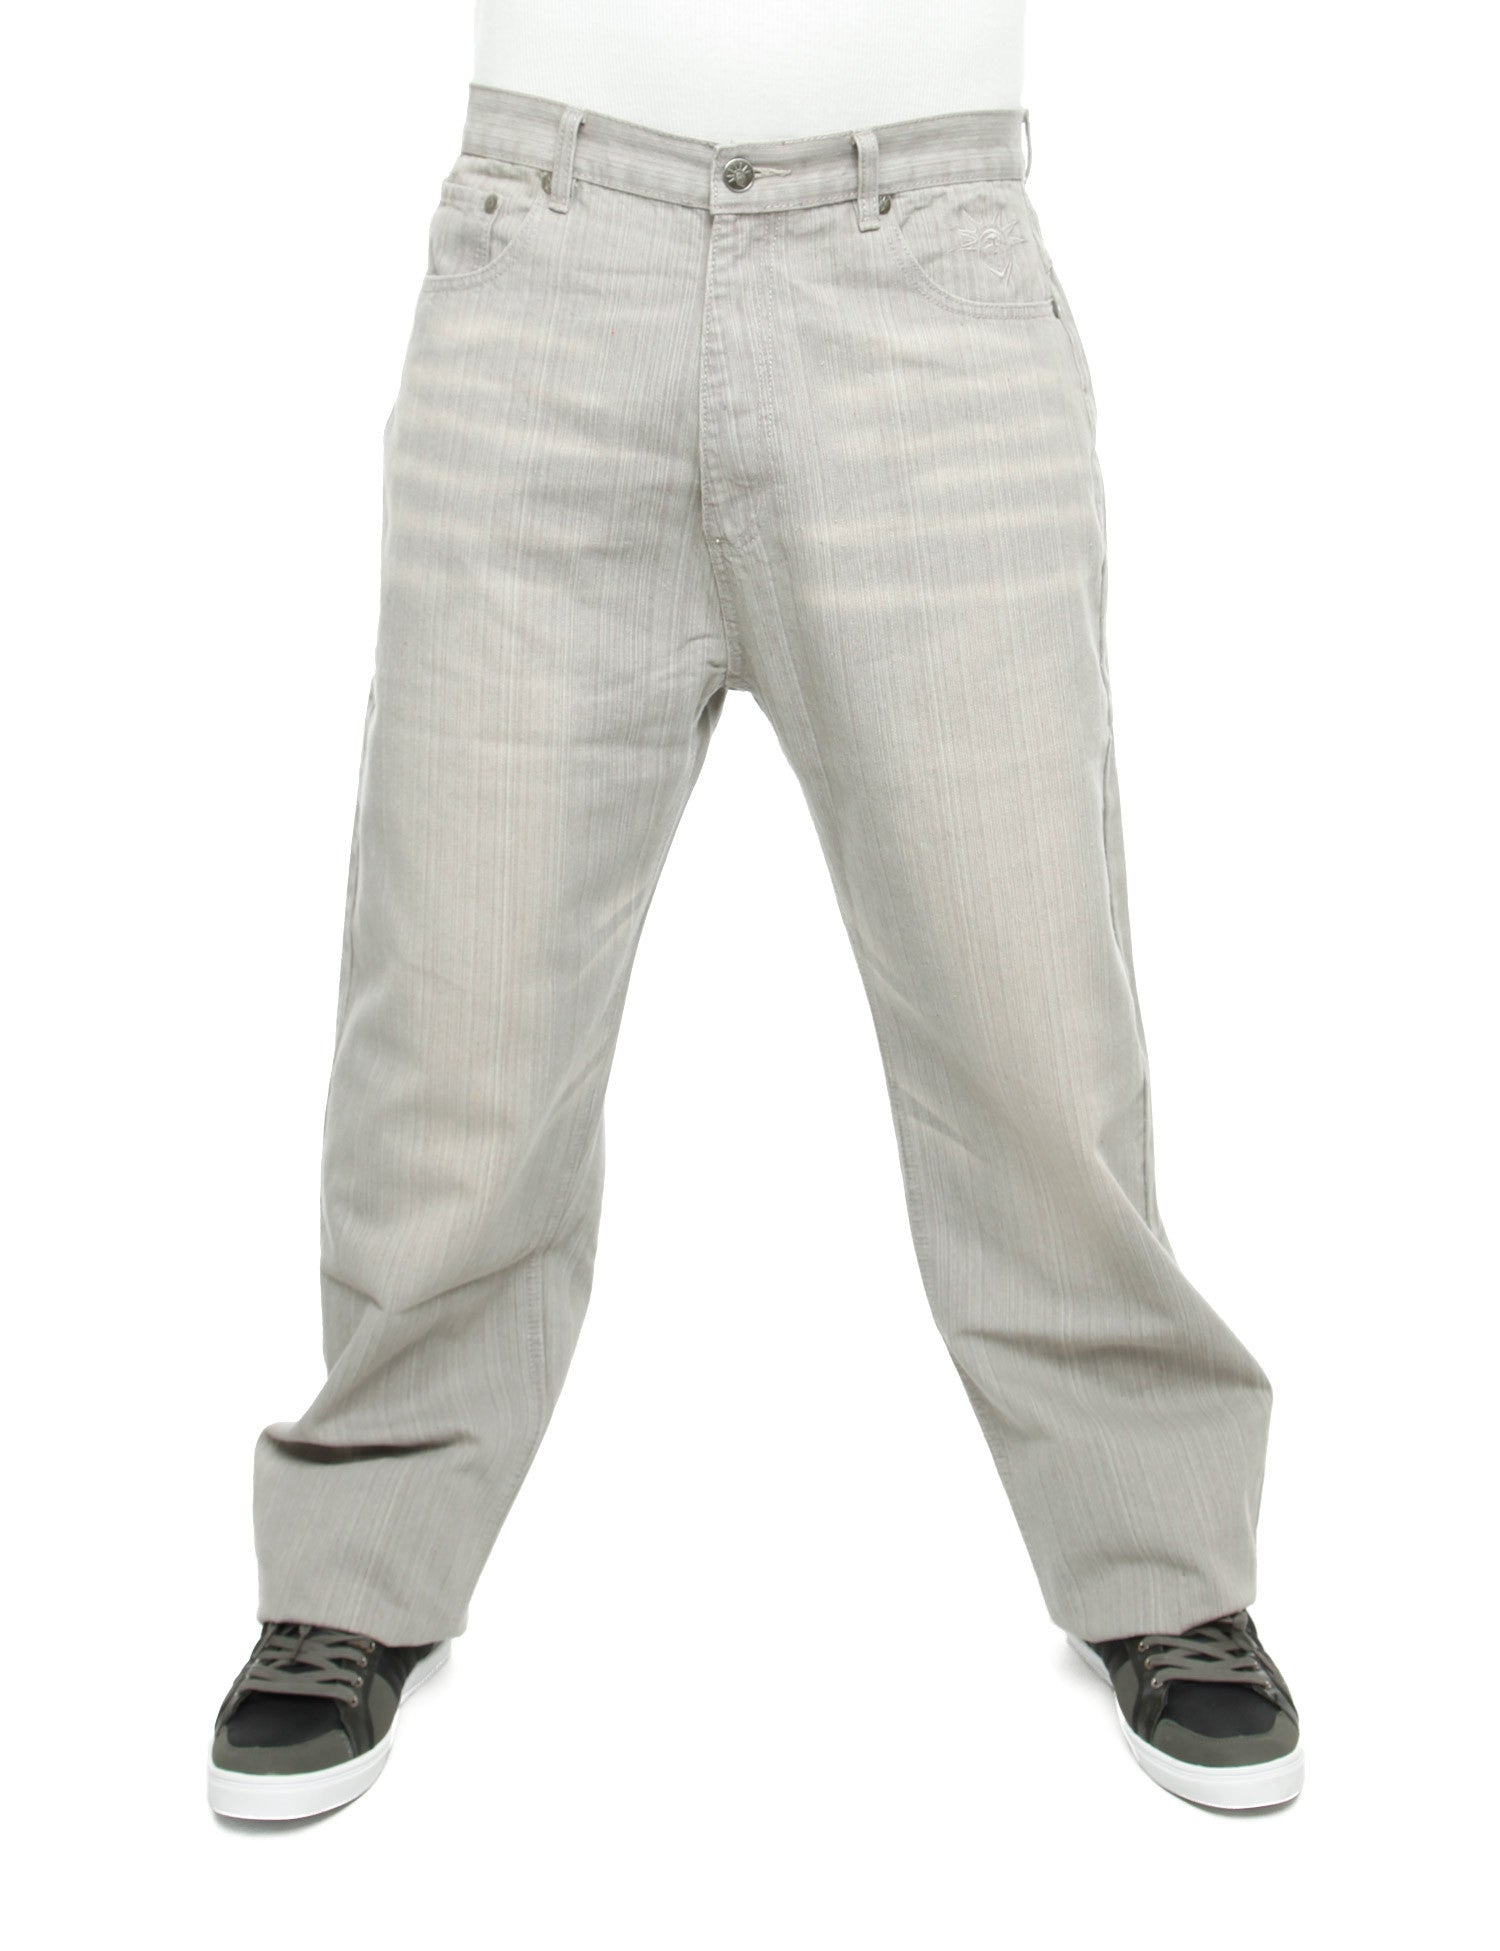 YLD Super Baggy Fit Jeans Ice Grey